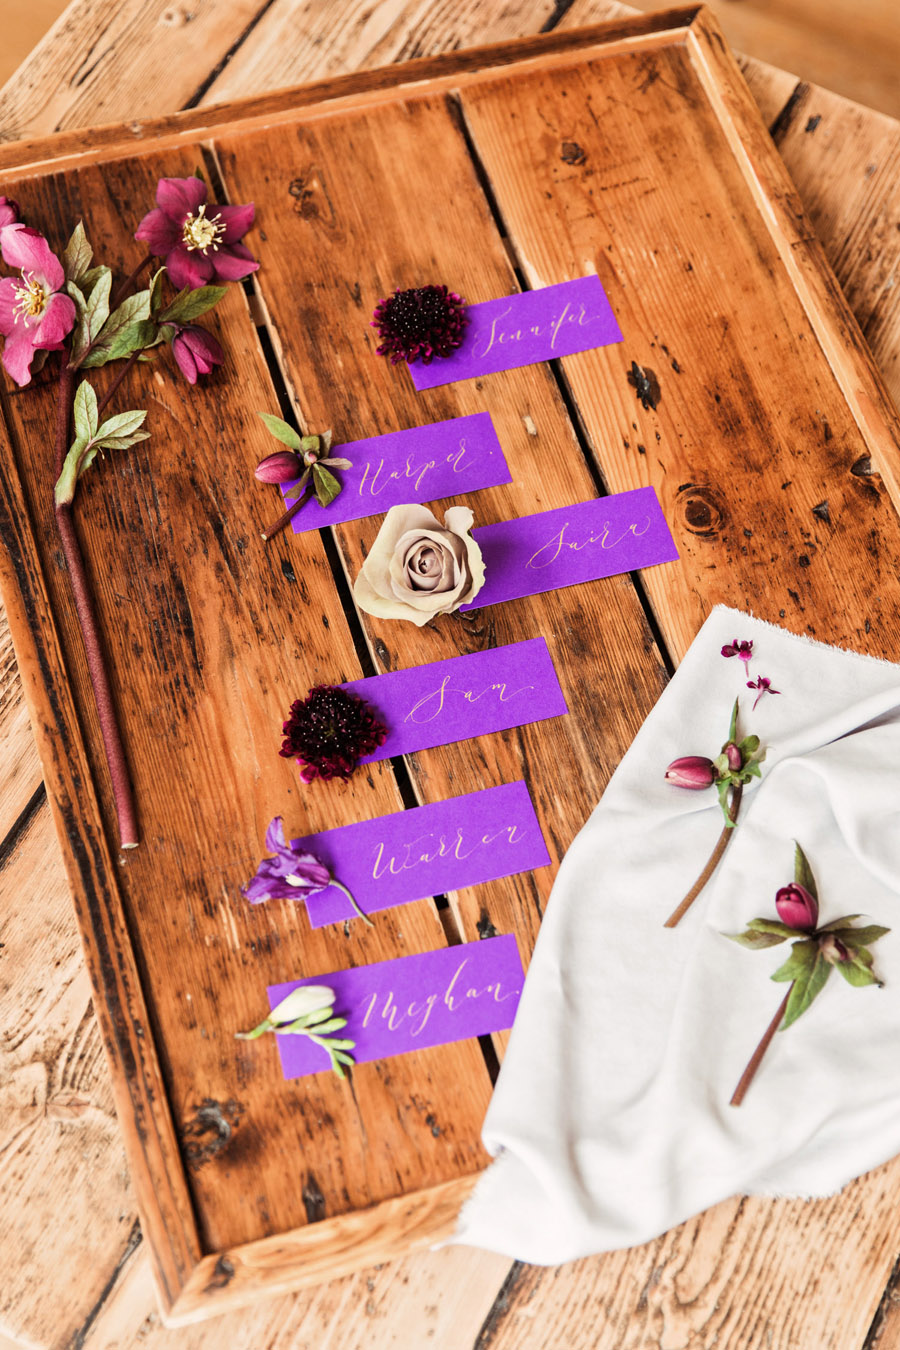 Calligraphy wedding service for place names and more - written by By Moon and Tide Calligraphy - image credit Camilla Lucinda (7)